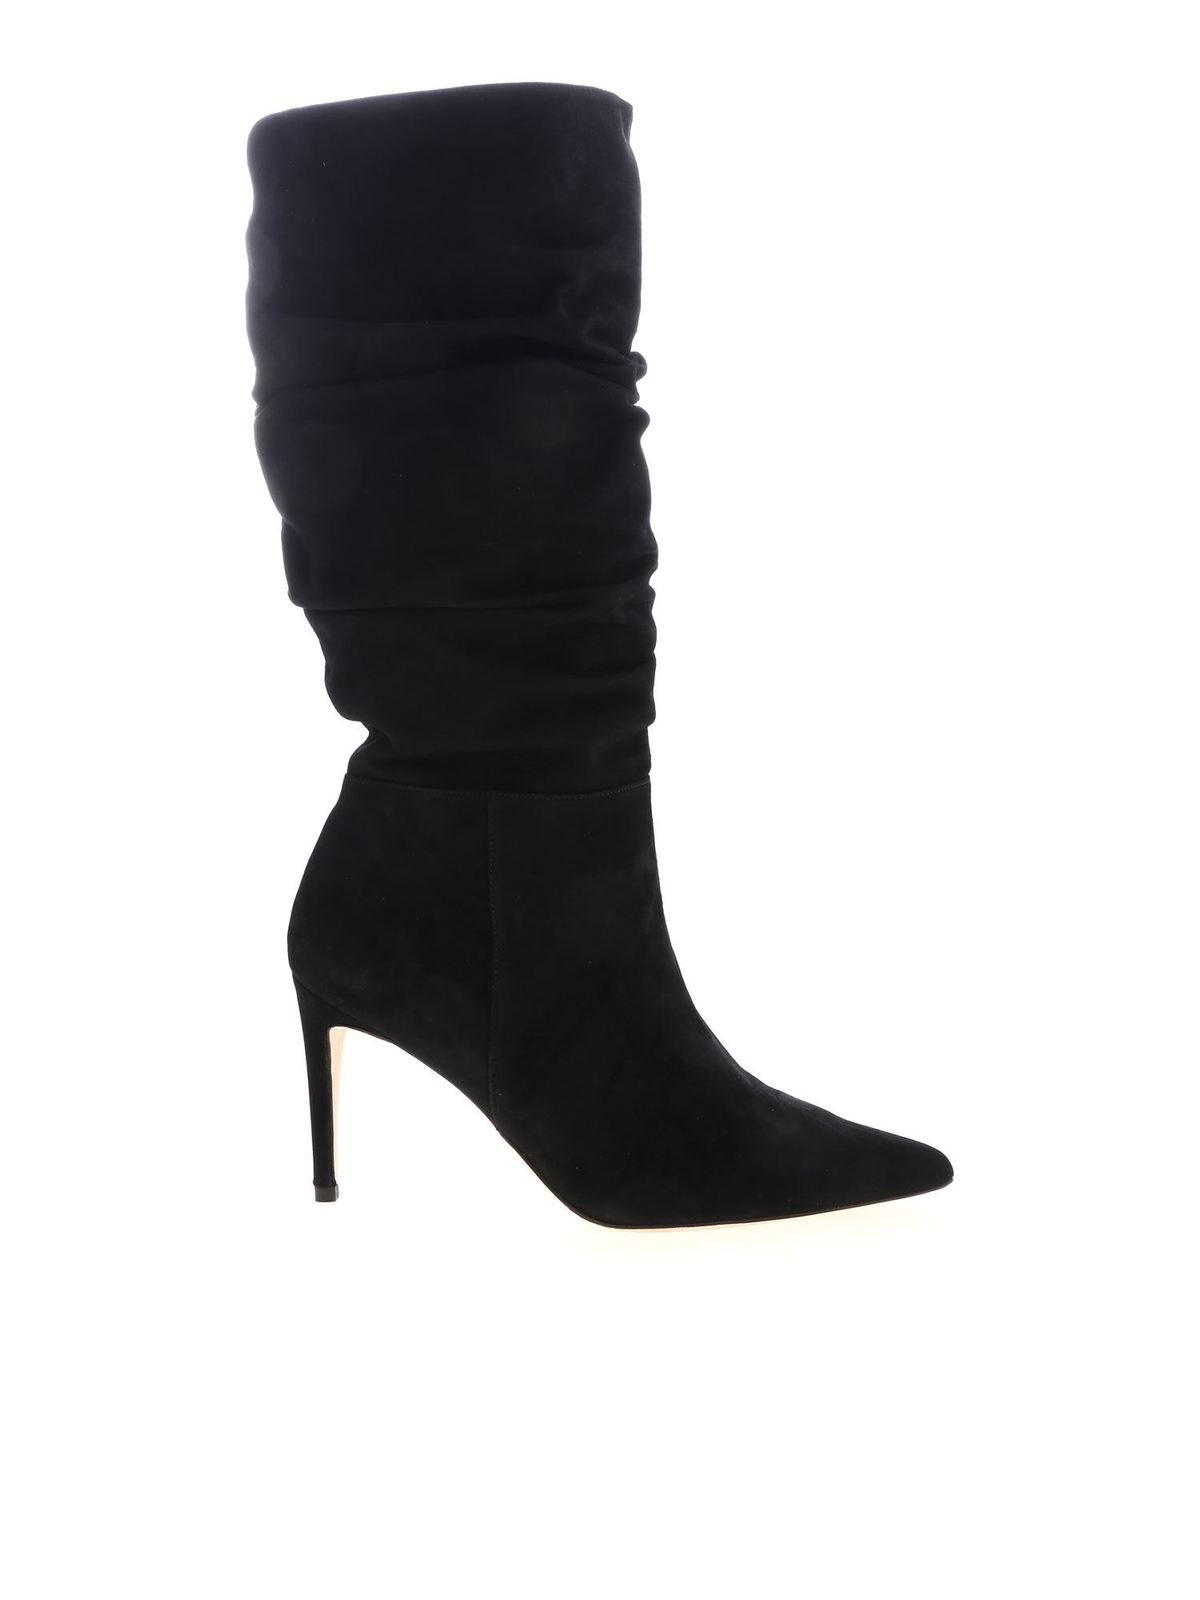 Alexandre Birman LUCY POINTED BOOT IN BLACK